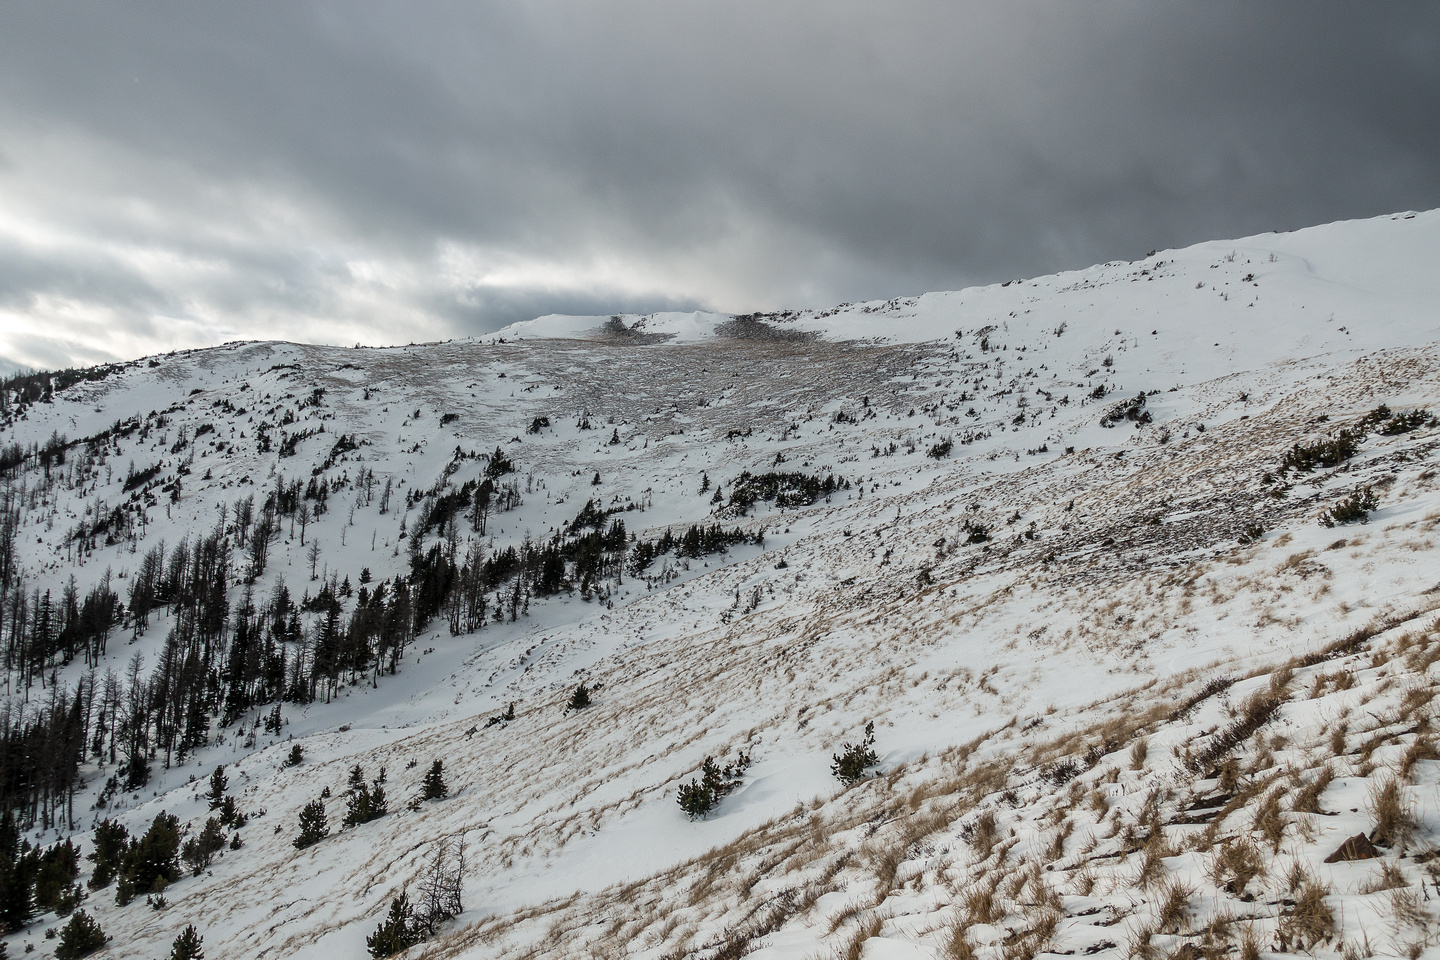 Our route up to the north ridge is obvious from the road - we simply avoided as much of the snow as possible.